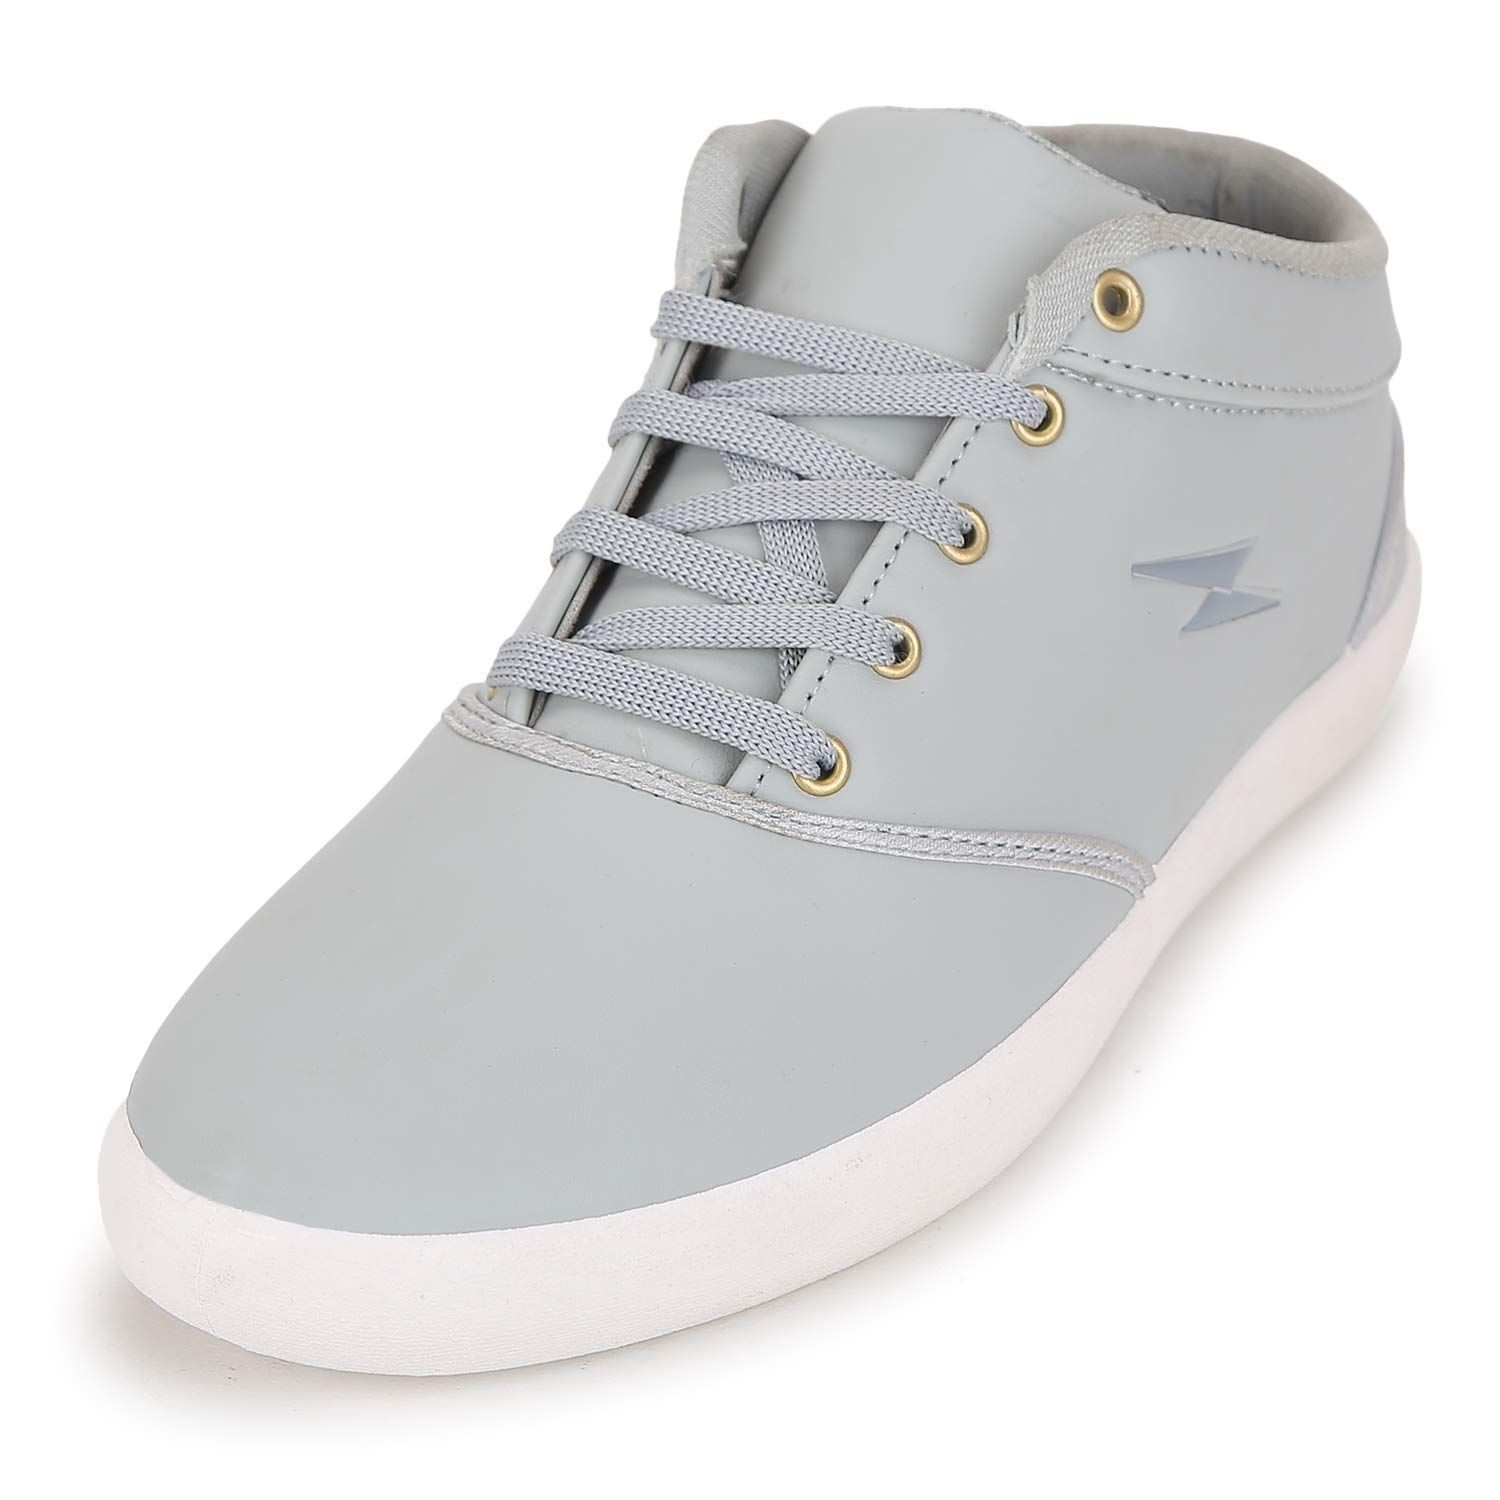 58f81c47d9a325 ... Boltt Men s Smart Casual Shoes Sneakers  Buy Online at Low Prices in  India - Amazon ...